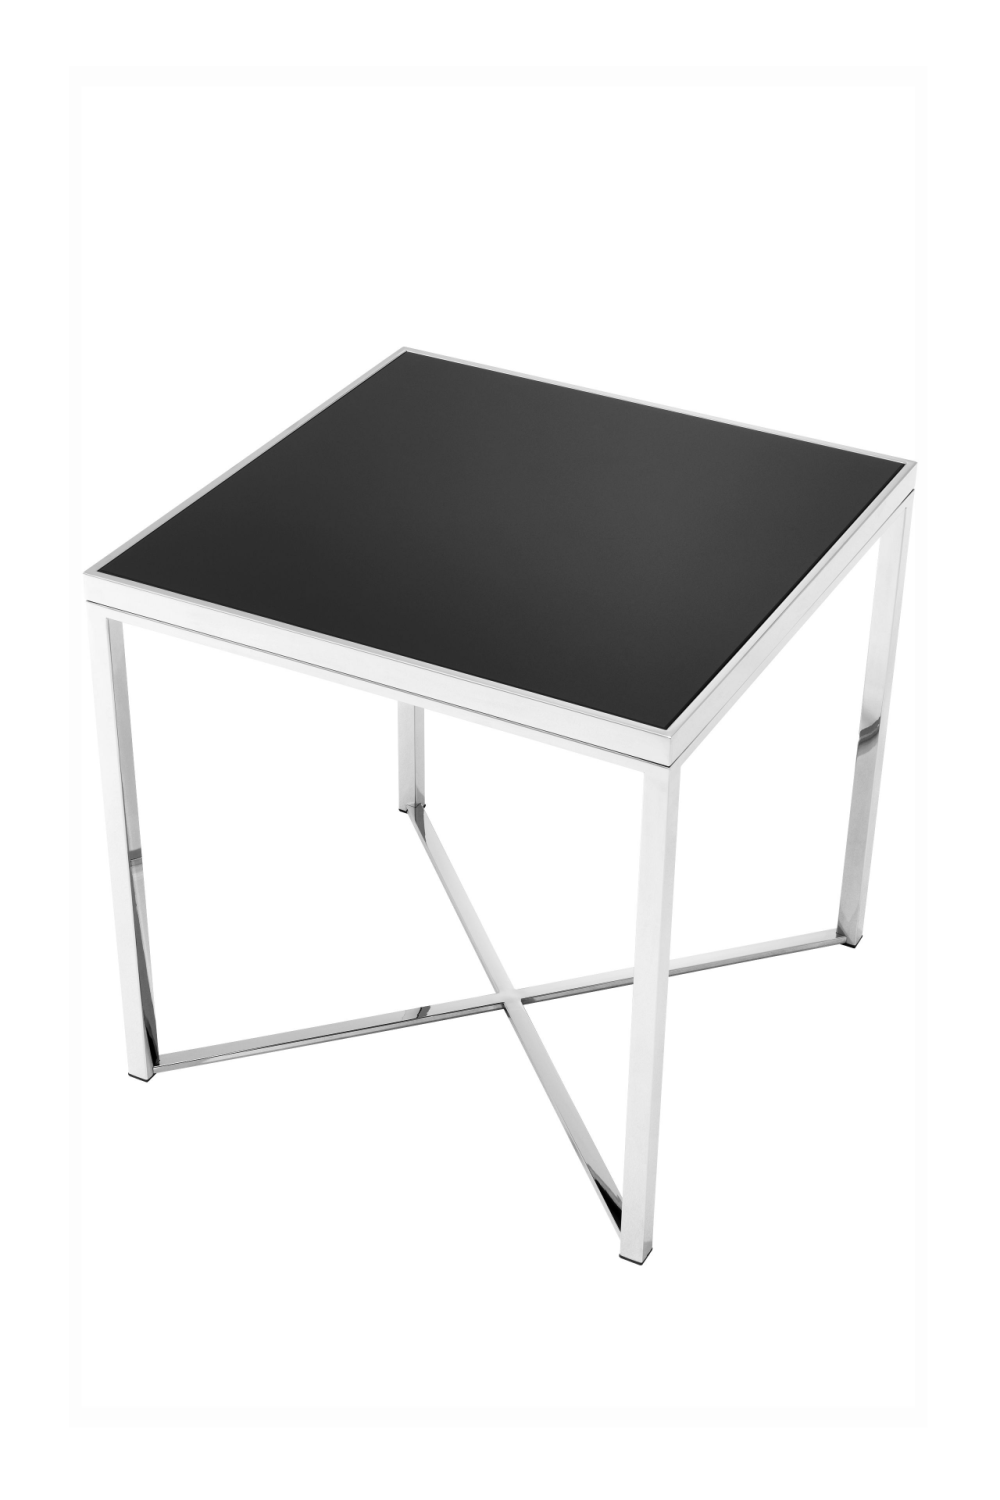 Black Glass Side Table | Eichholtz Labyrinto | #1 Eichholtz Retailer